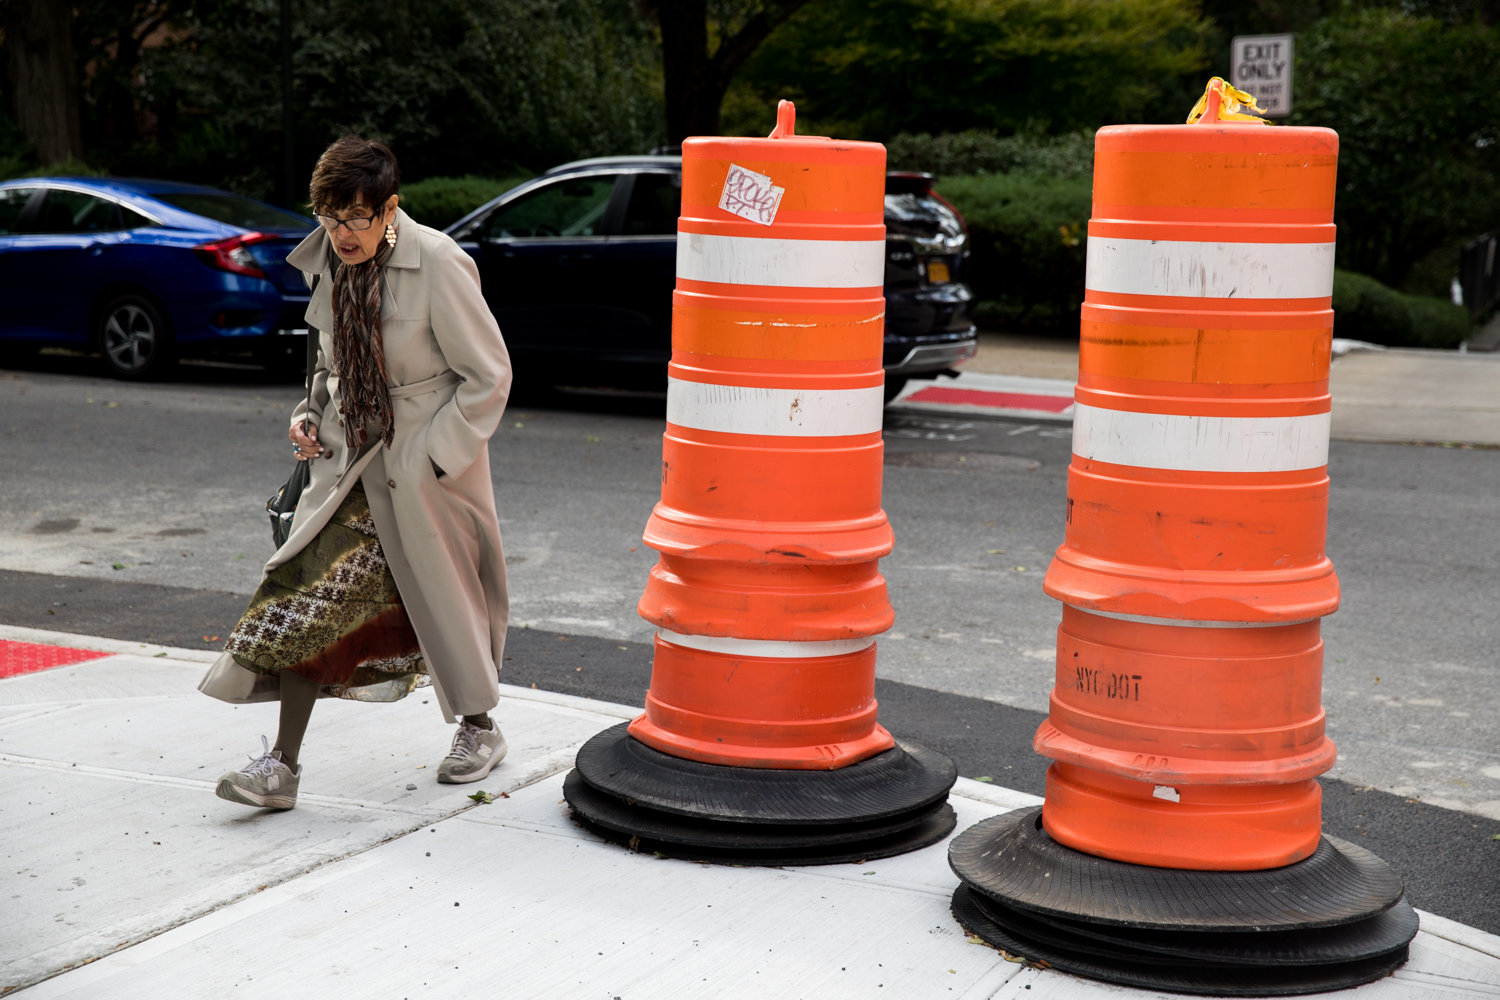 A pedestrian walks onto Kappock Street after crossing Palisade Avenue. The transportation department is extending curbs at intersections like this to narrow crosswalks.